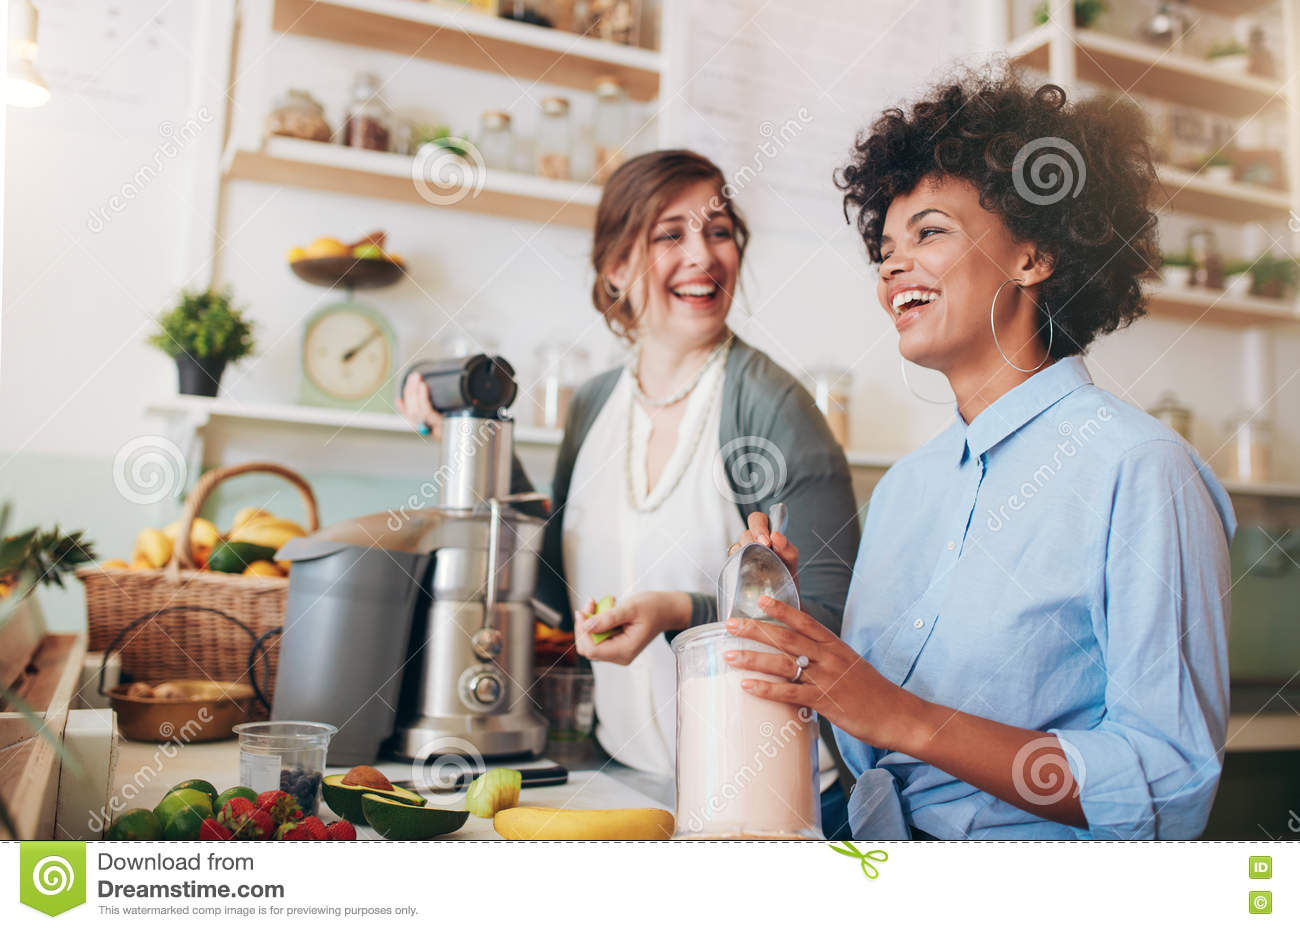 Happy young women working at juice bar counter